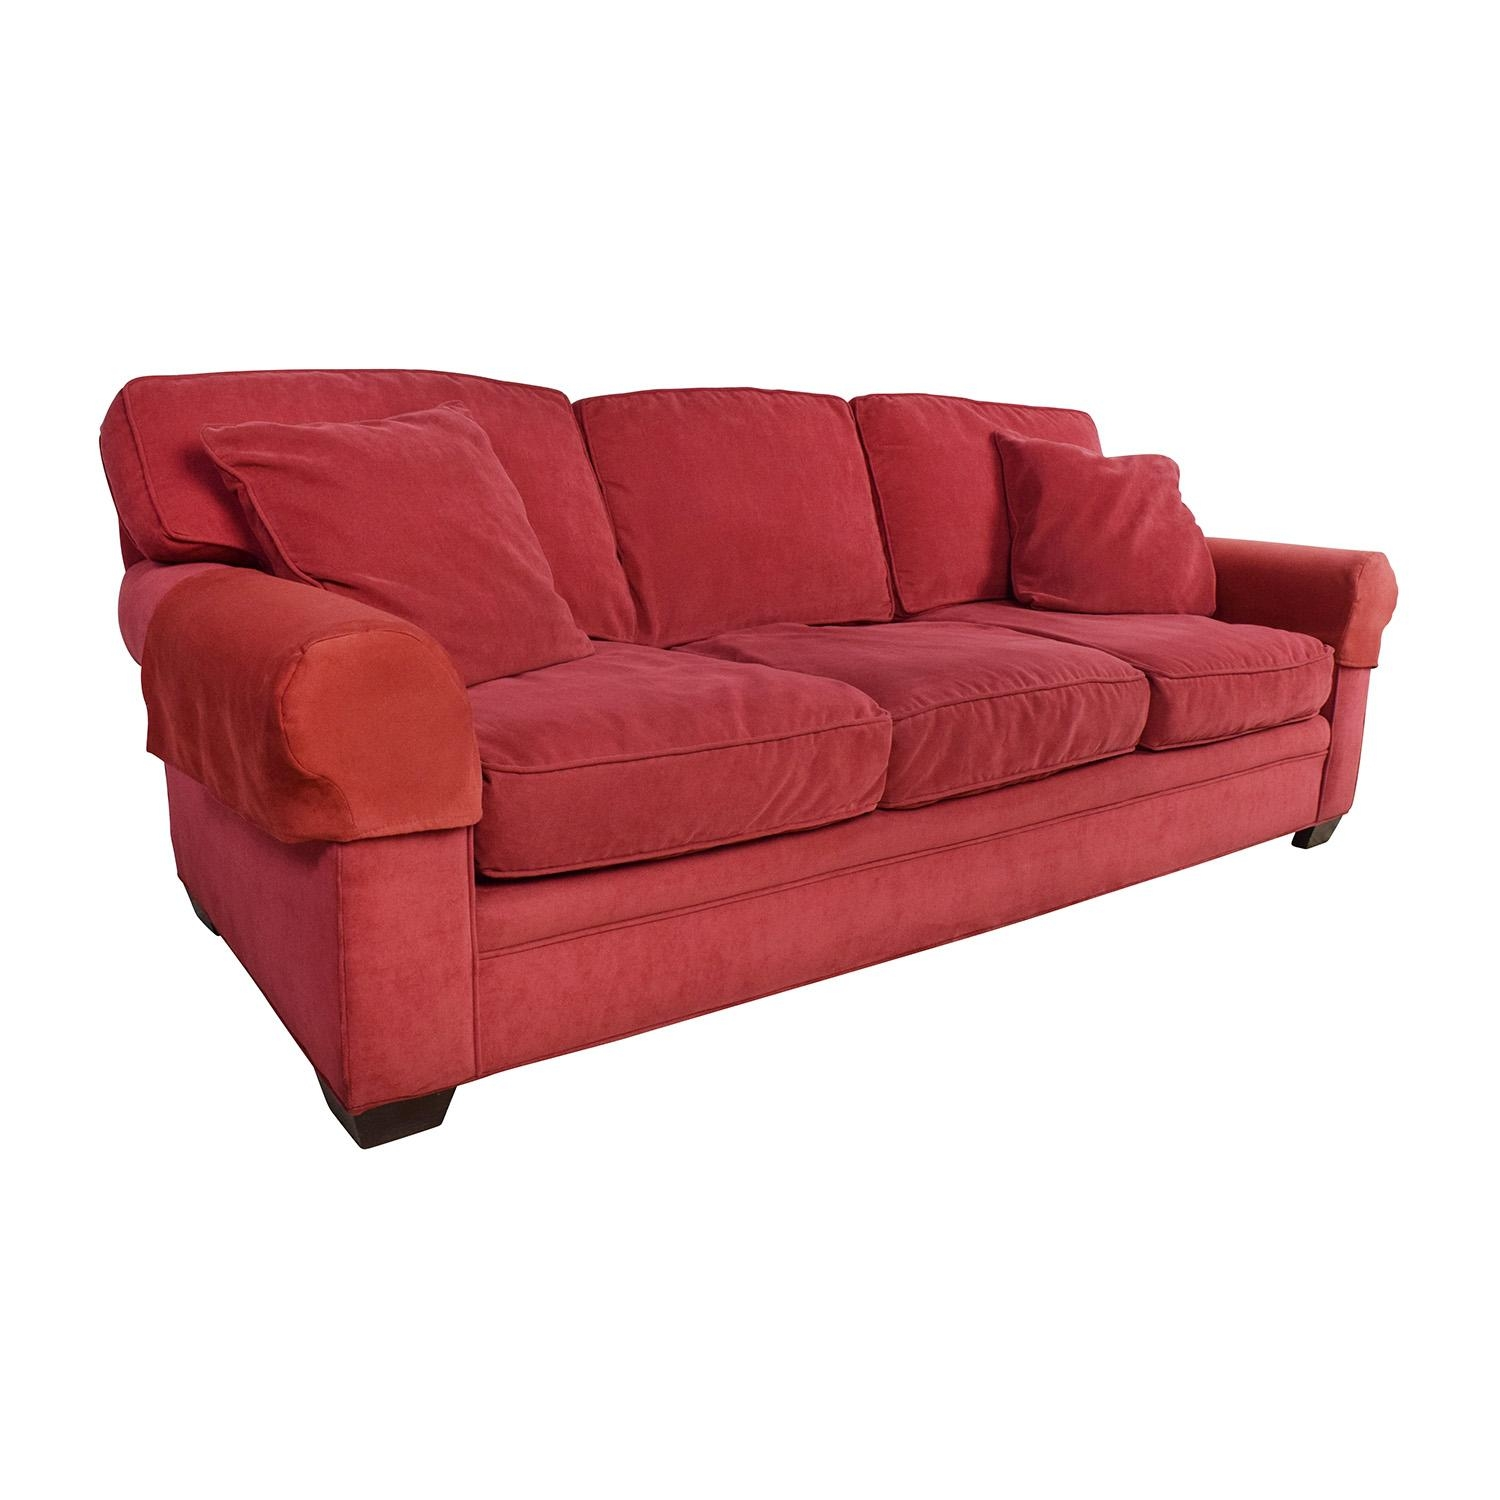 red leather sleeper sofa loveseat sofas cheap 20 43 choices of chairs ideas